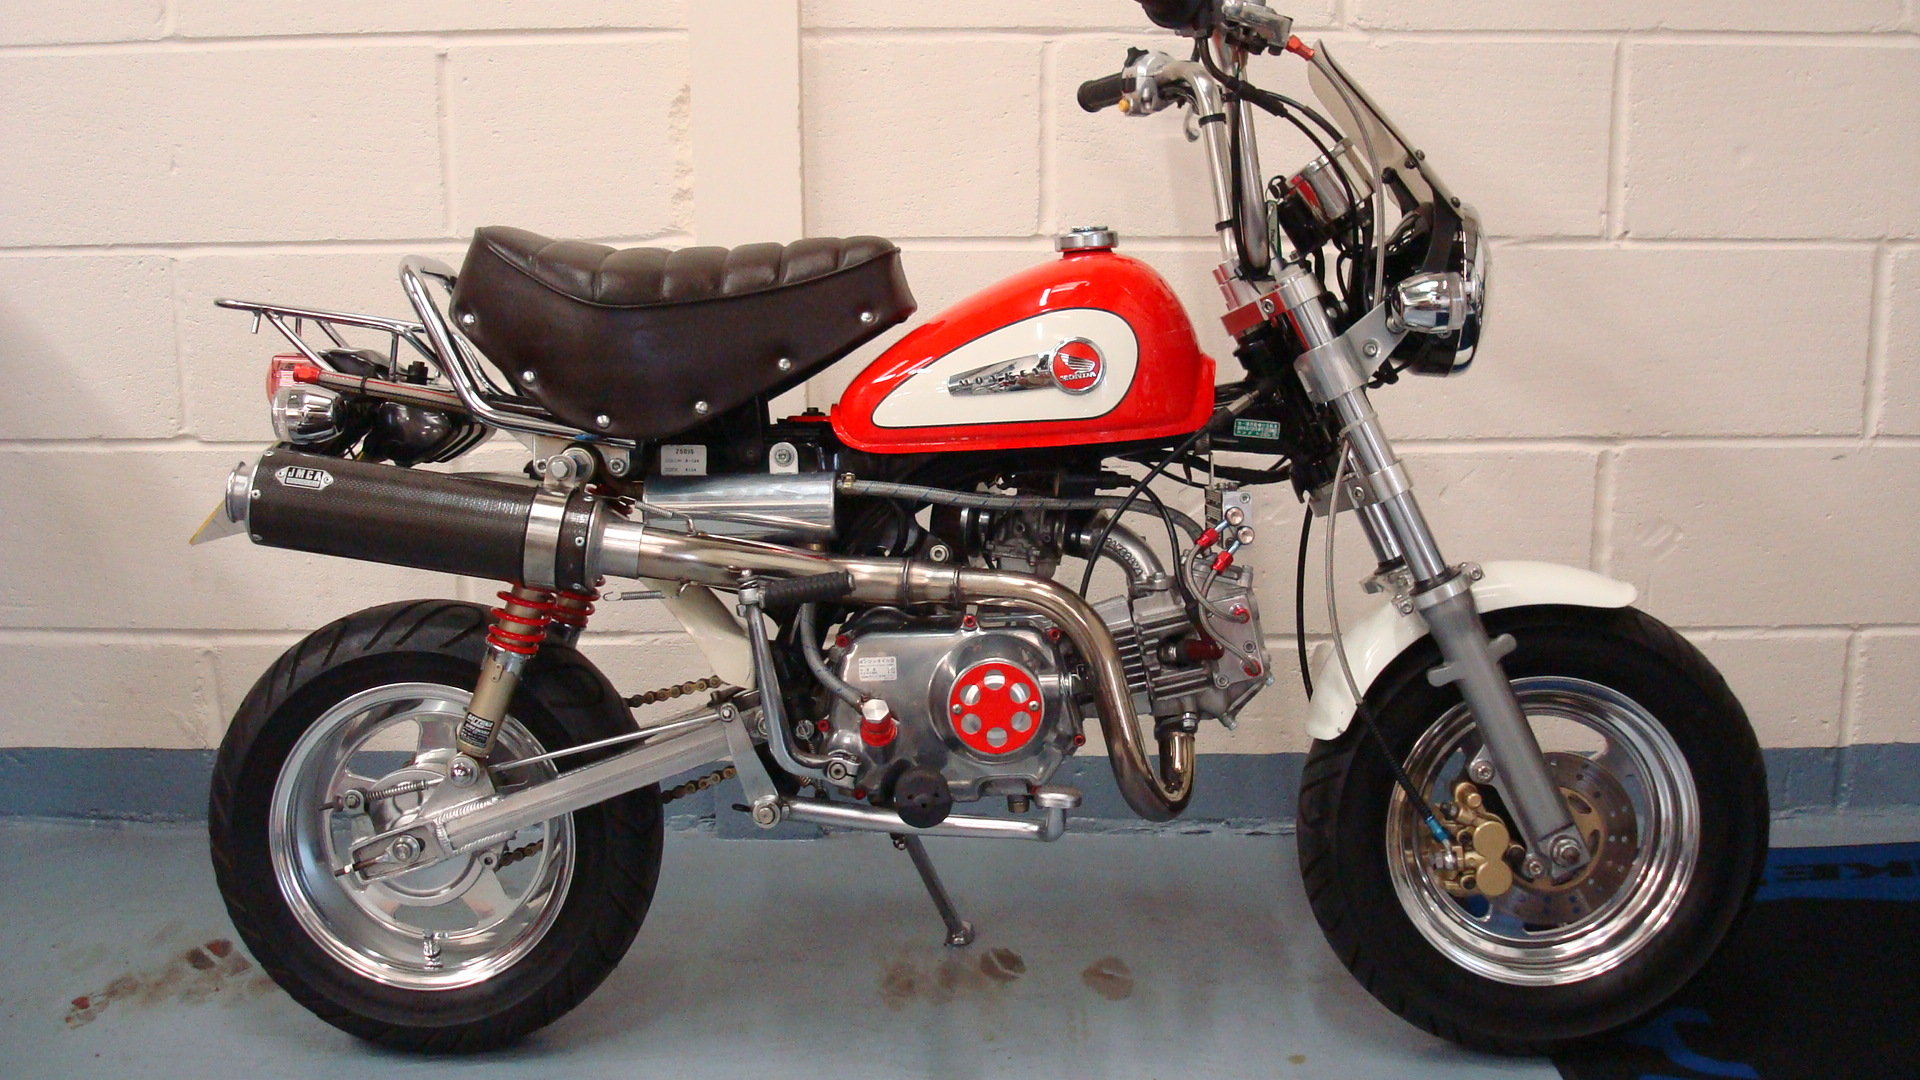 Honda Z50 J MONKEY BIKE SPECIAL 1999-T **1 LADY OWNER** For Sale (picture 1 of 6)